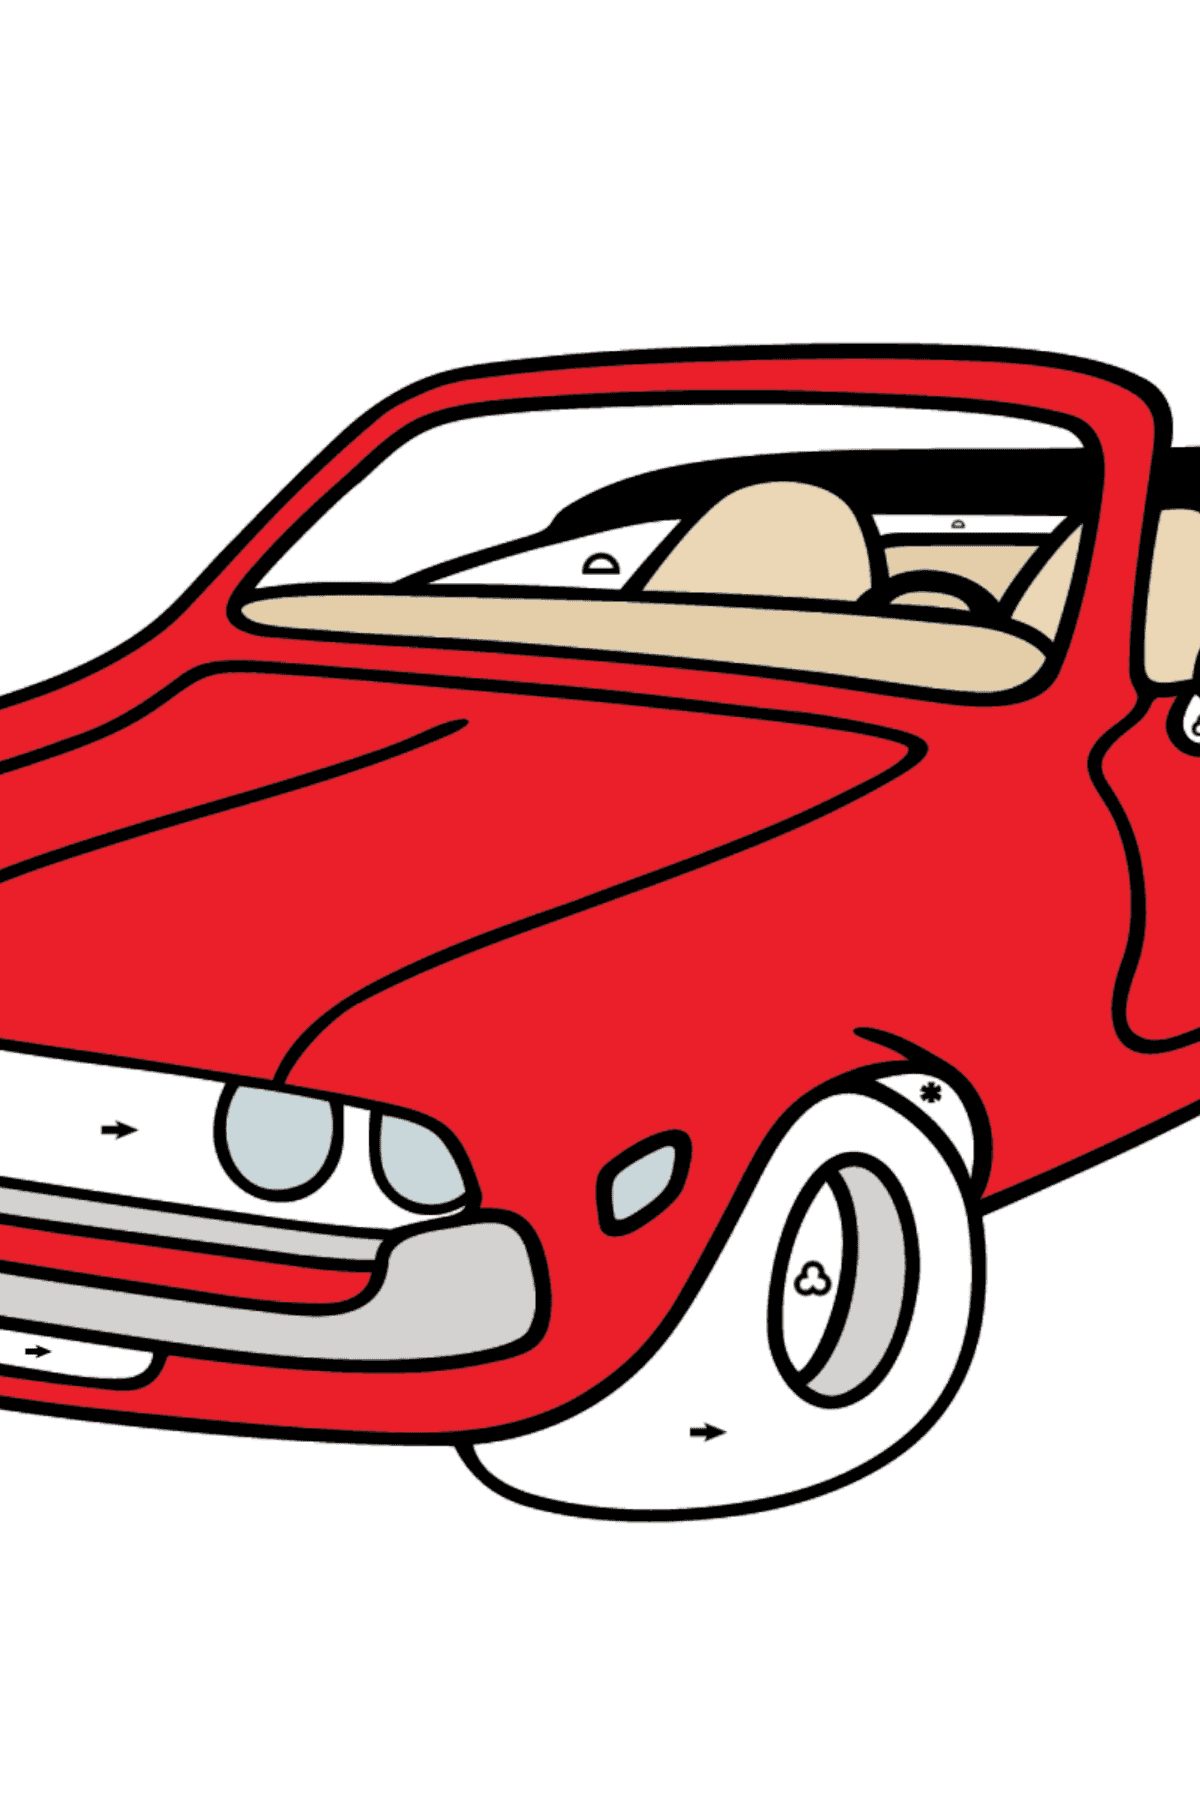 Open Top Cars coloring page - Coloring by Symbols and Geometric Shapes for Kids